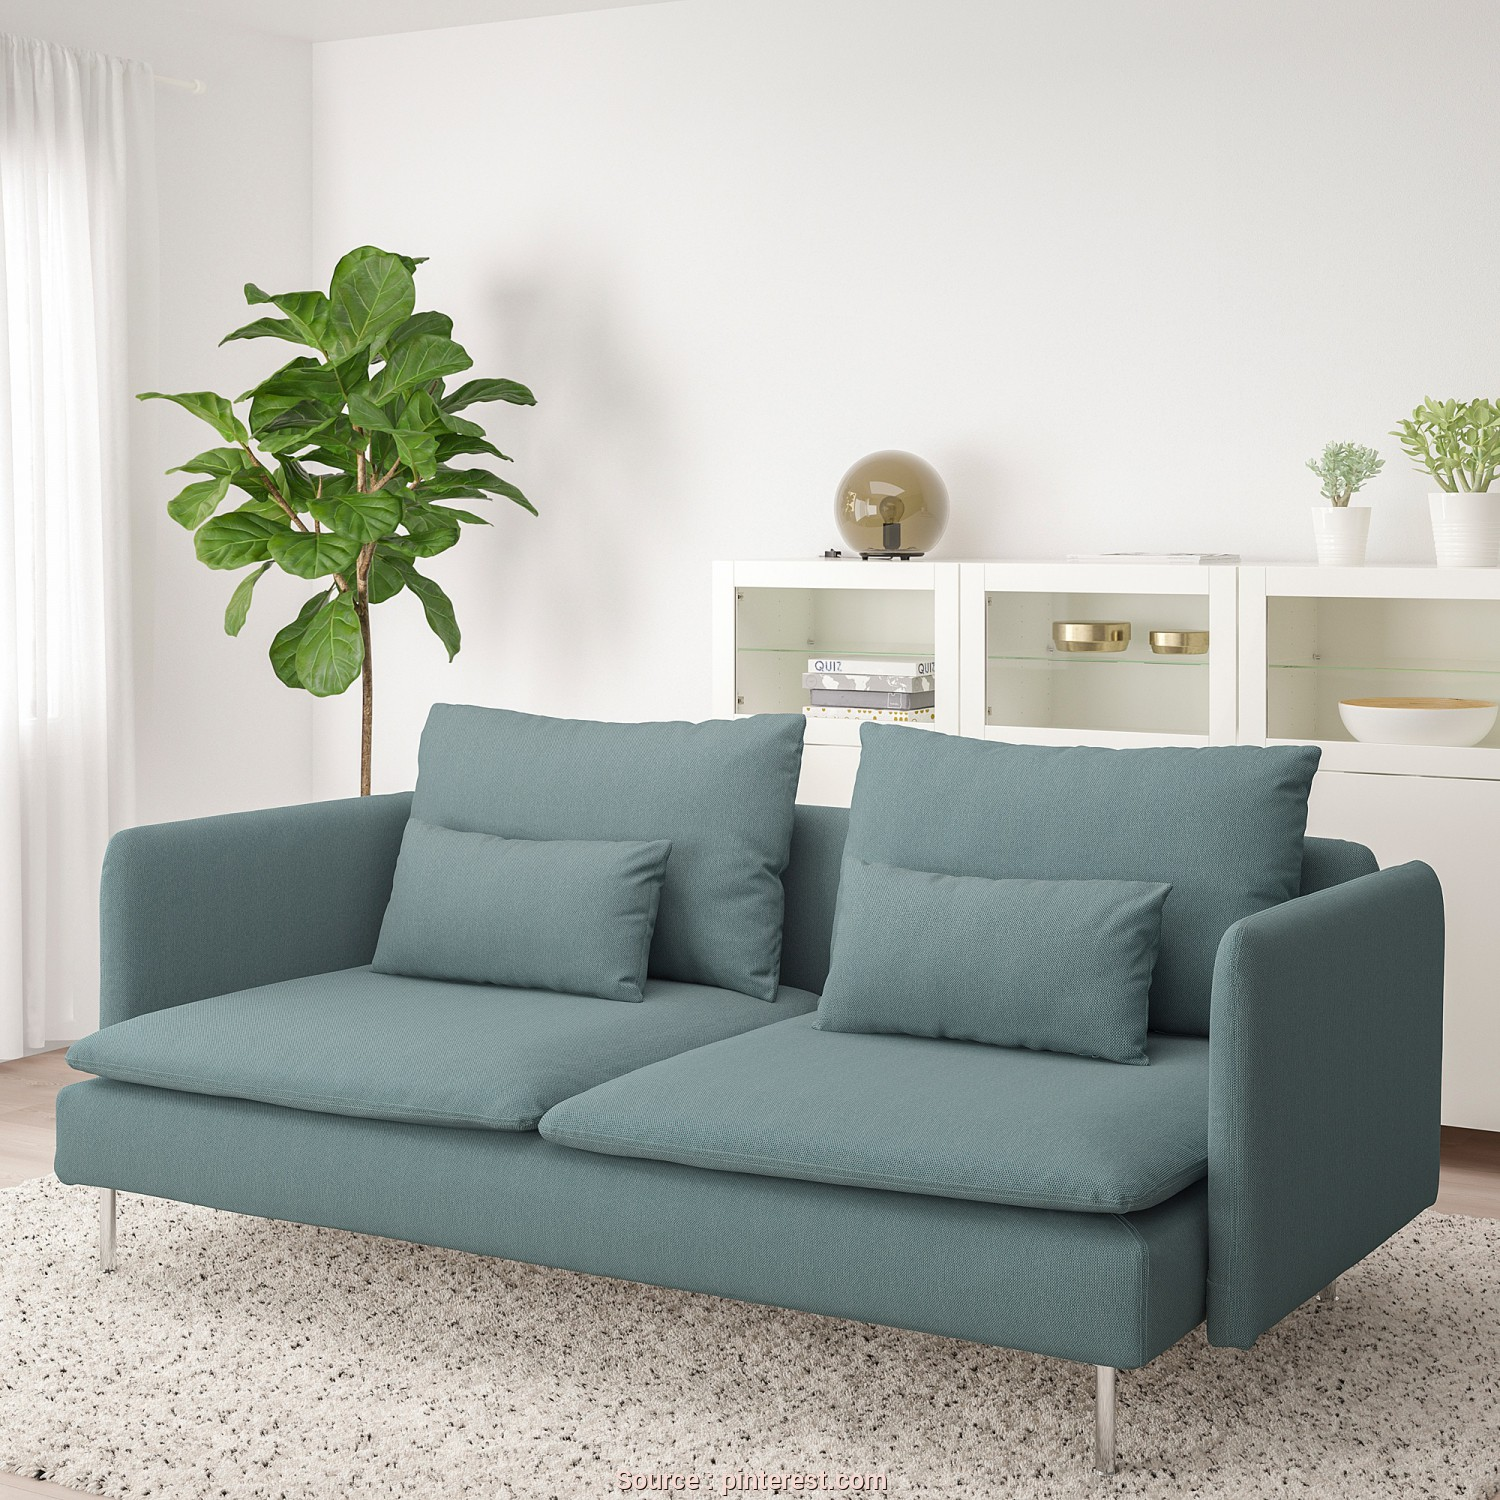 Ikea Asarum, Bettsofa, Casuale YPPERLIG 3-Seat Sleeper Sofa, Orrsta Light Gray In 2019, Future Space, Pinterest, Sofa, Sleeper Sofa, Chair Bed